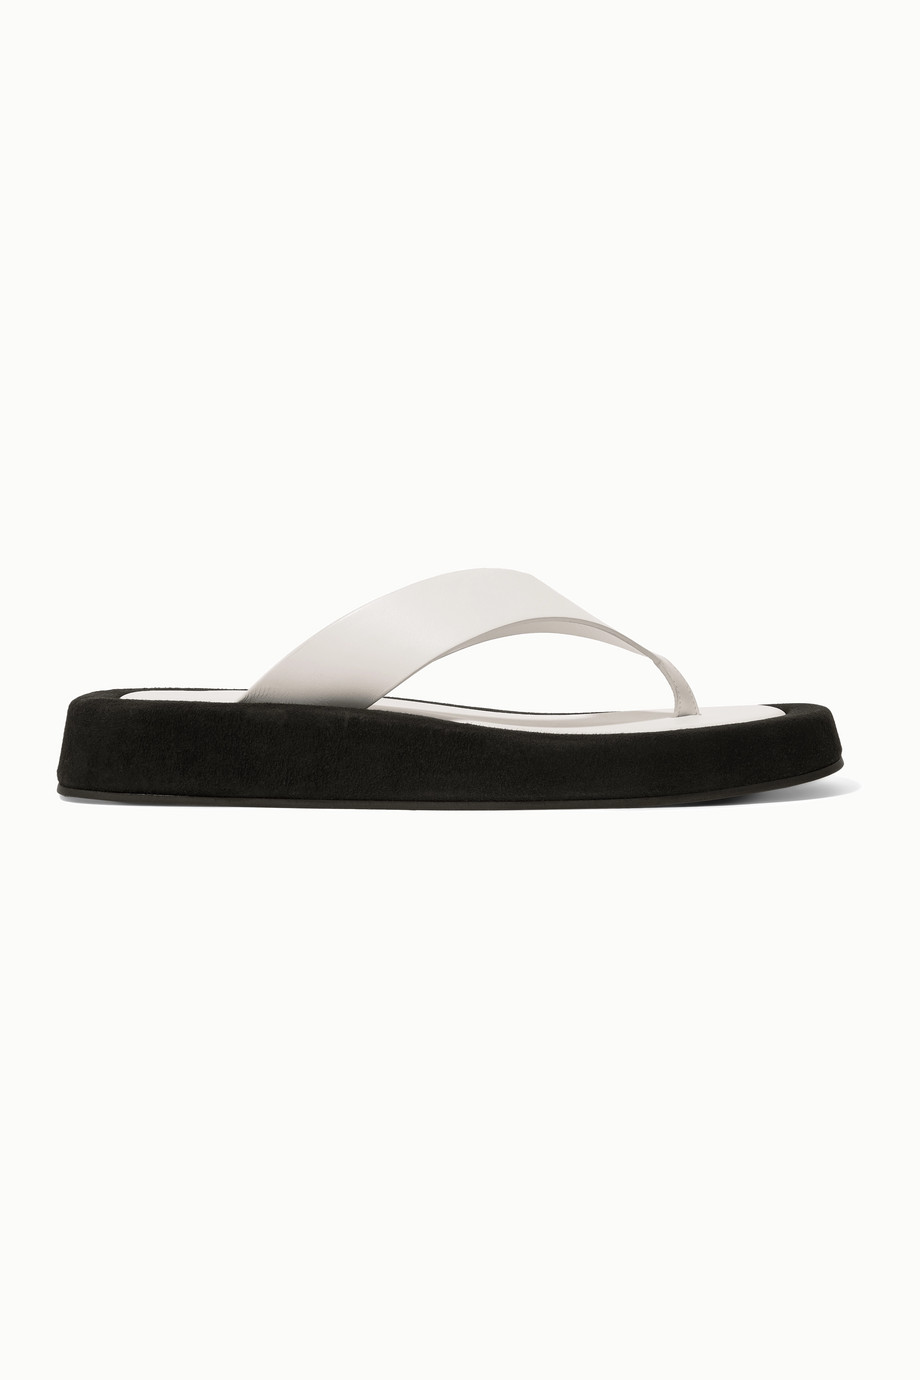 the-row-white-ginza-two-tone-leather-and-suede-platform-flip-flops